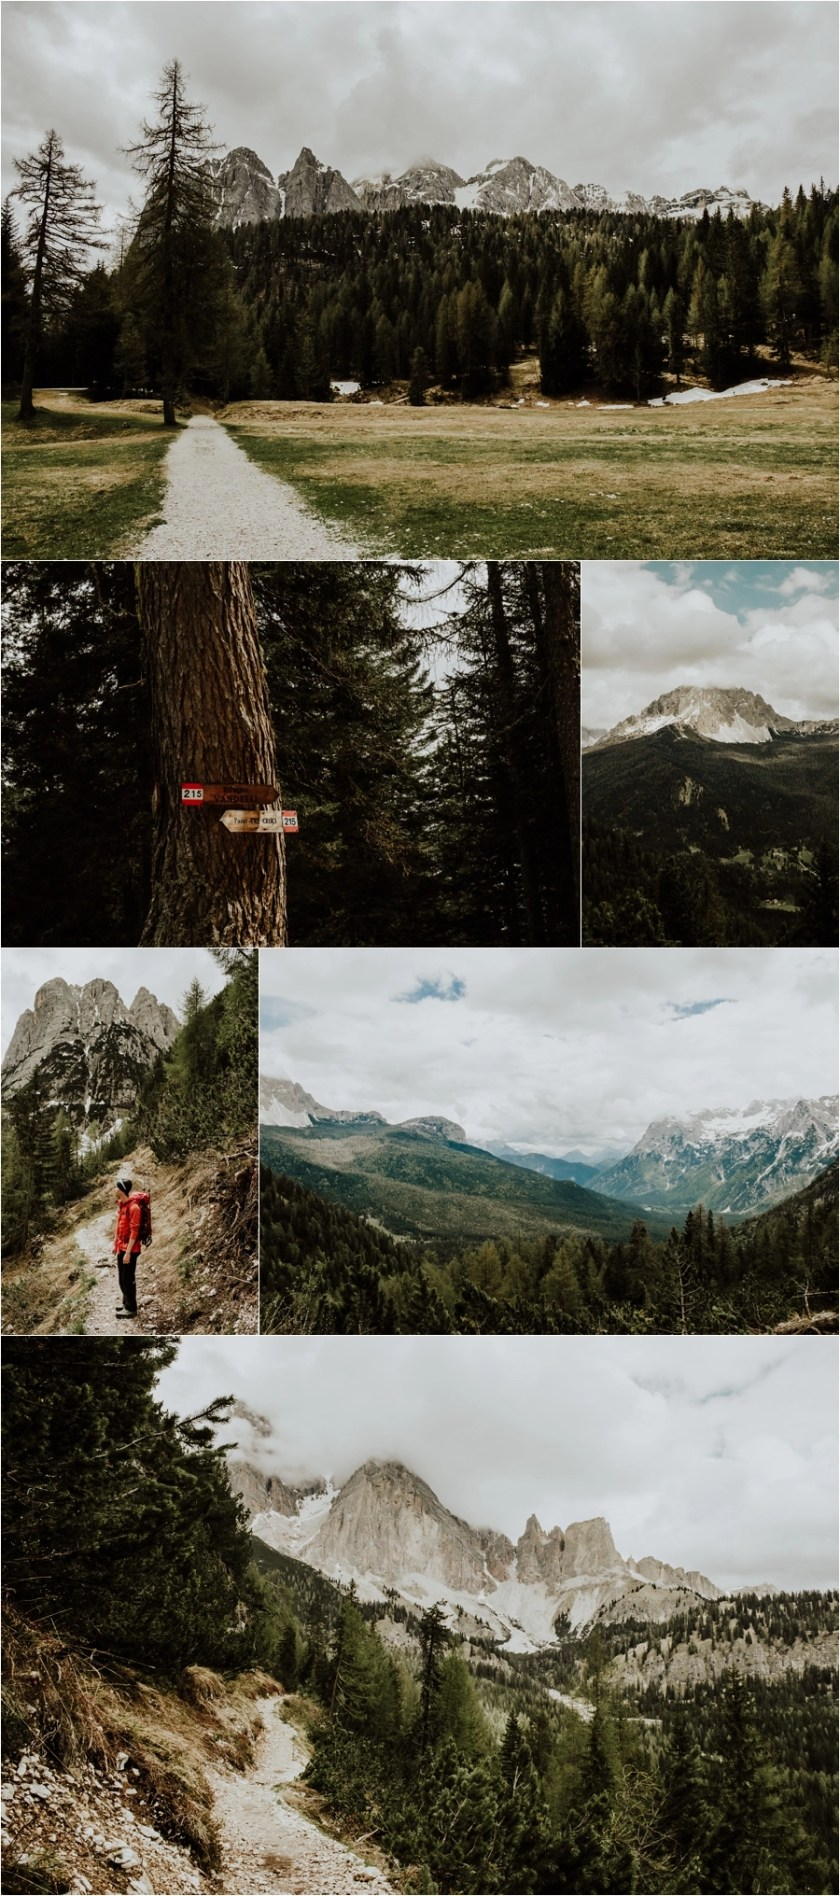 Spring Hike to the Rifugio Vandelli in the Dolomites by Wild Connections Photography